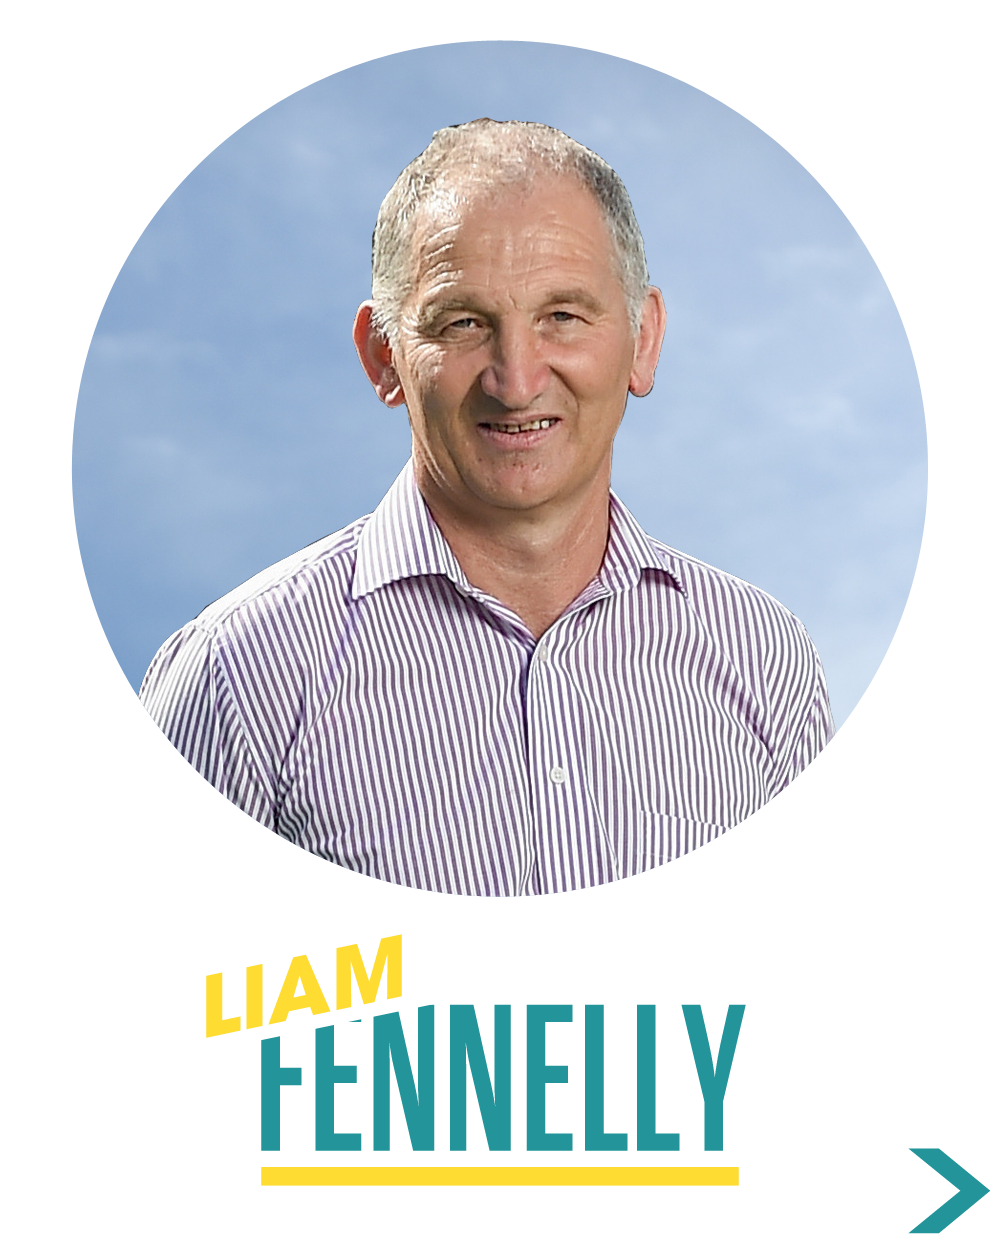 Liam Fennelly